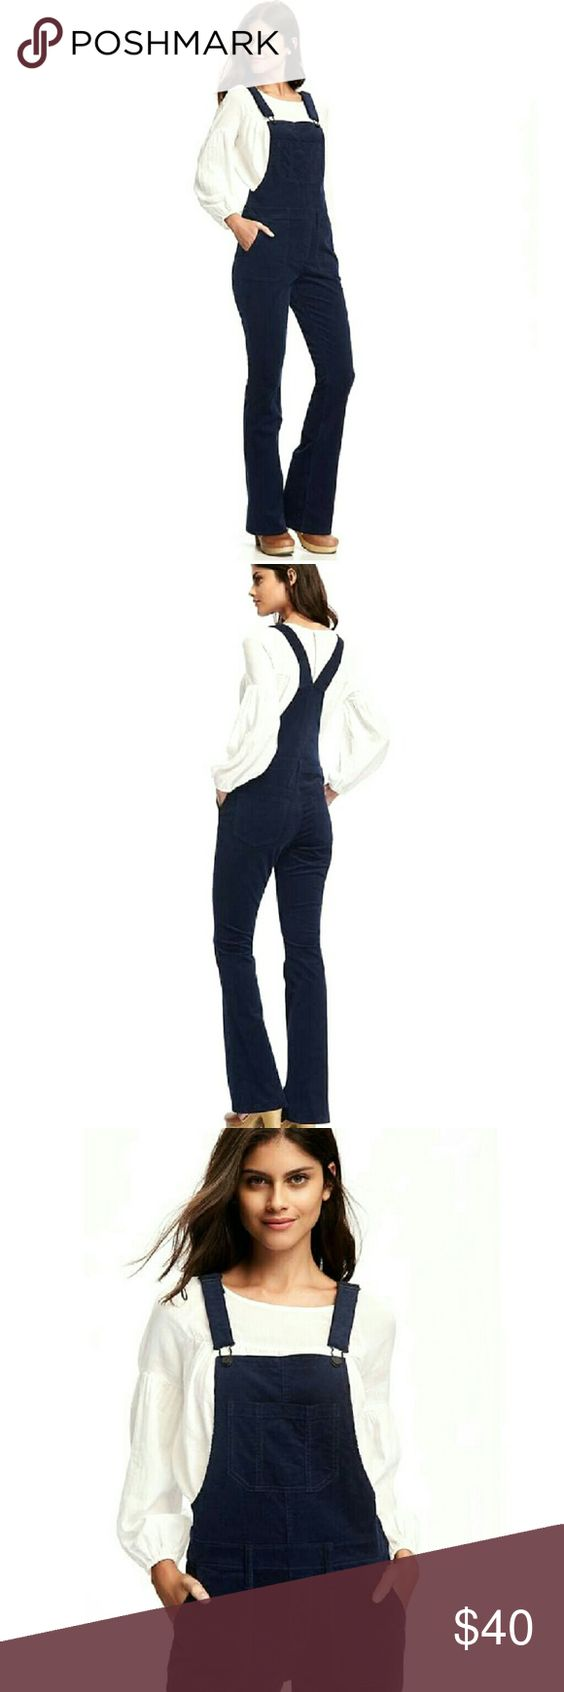 """Navy Corduroy Overalls Navy overalls with flare bell bottoms. Soft, medium weight stretch corduroy. Easy step in style with side zip closure. Adjustable shoulder straps. Patch pockets. Cotton/spandex blend.  Size: 12 Measurements:  Waist: 36""""  Hip: 42""""  Rise: 10""""   Inseam: 32""""   Length: top of bib to hem: 53""""  NO Trade / NO Paypal Pants Boot Cut & Flare"""